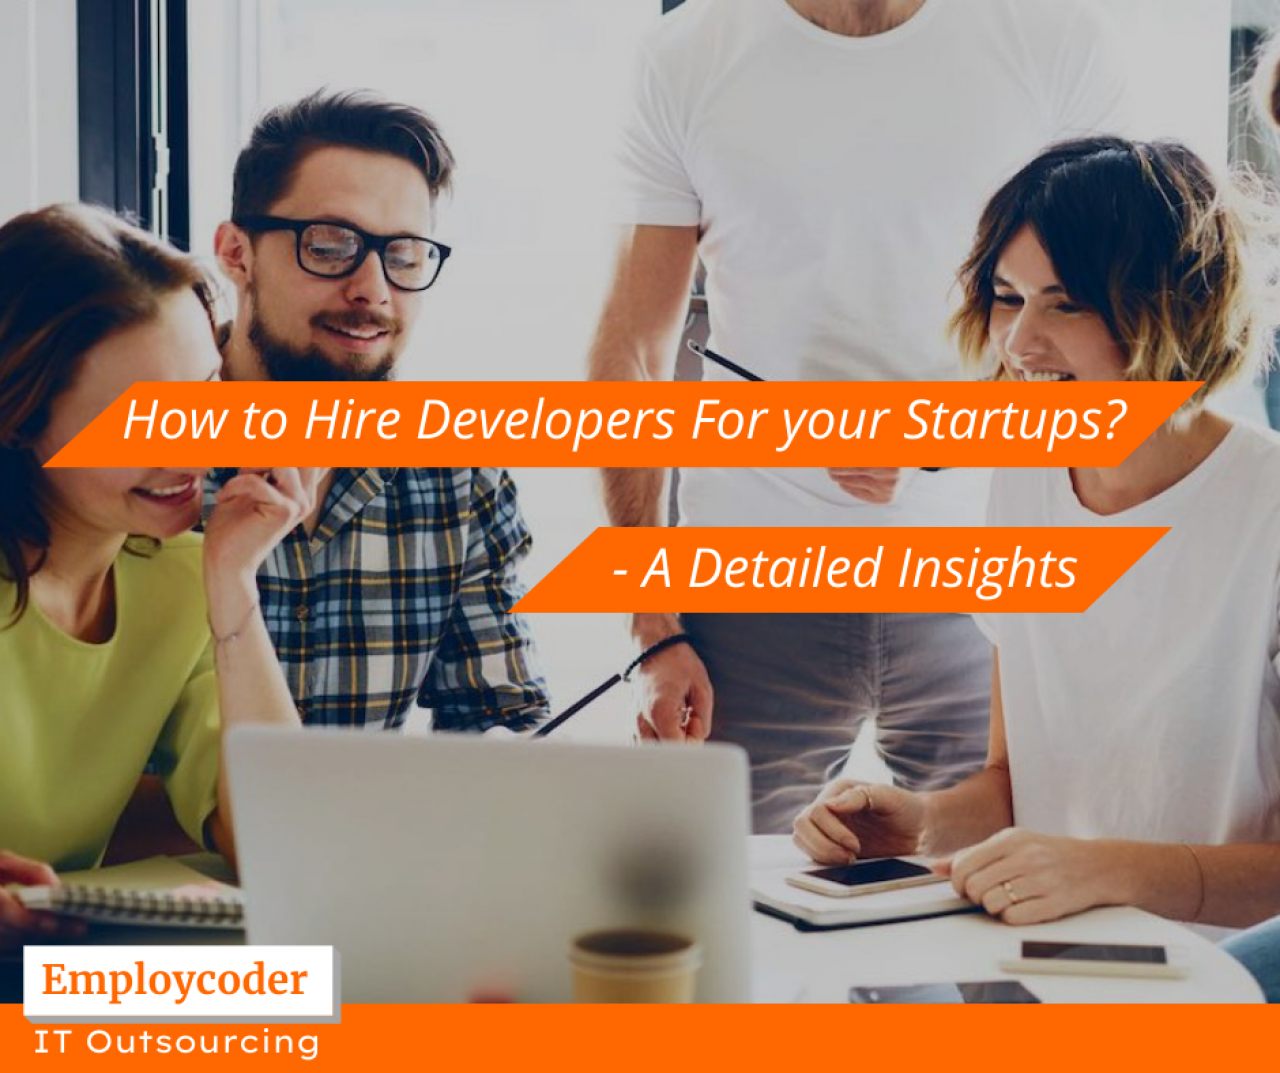 How to hire developers for your startups